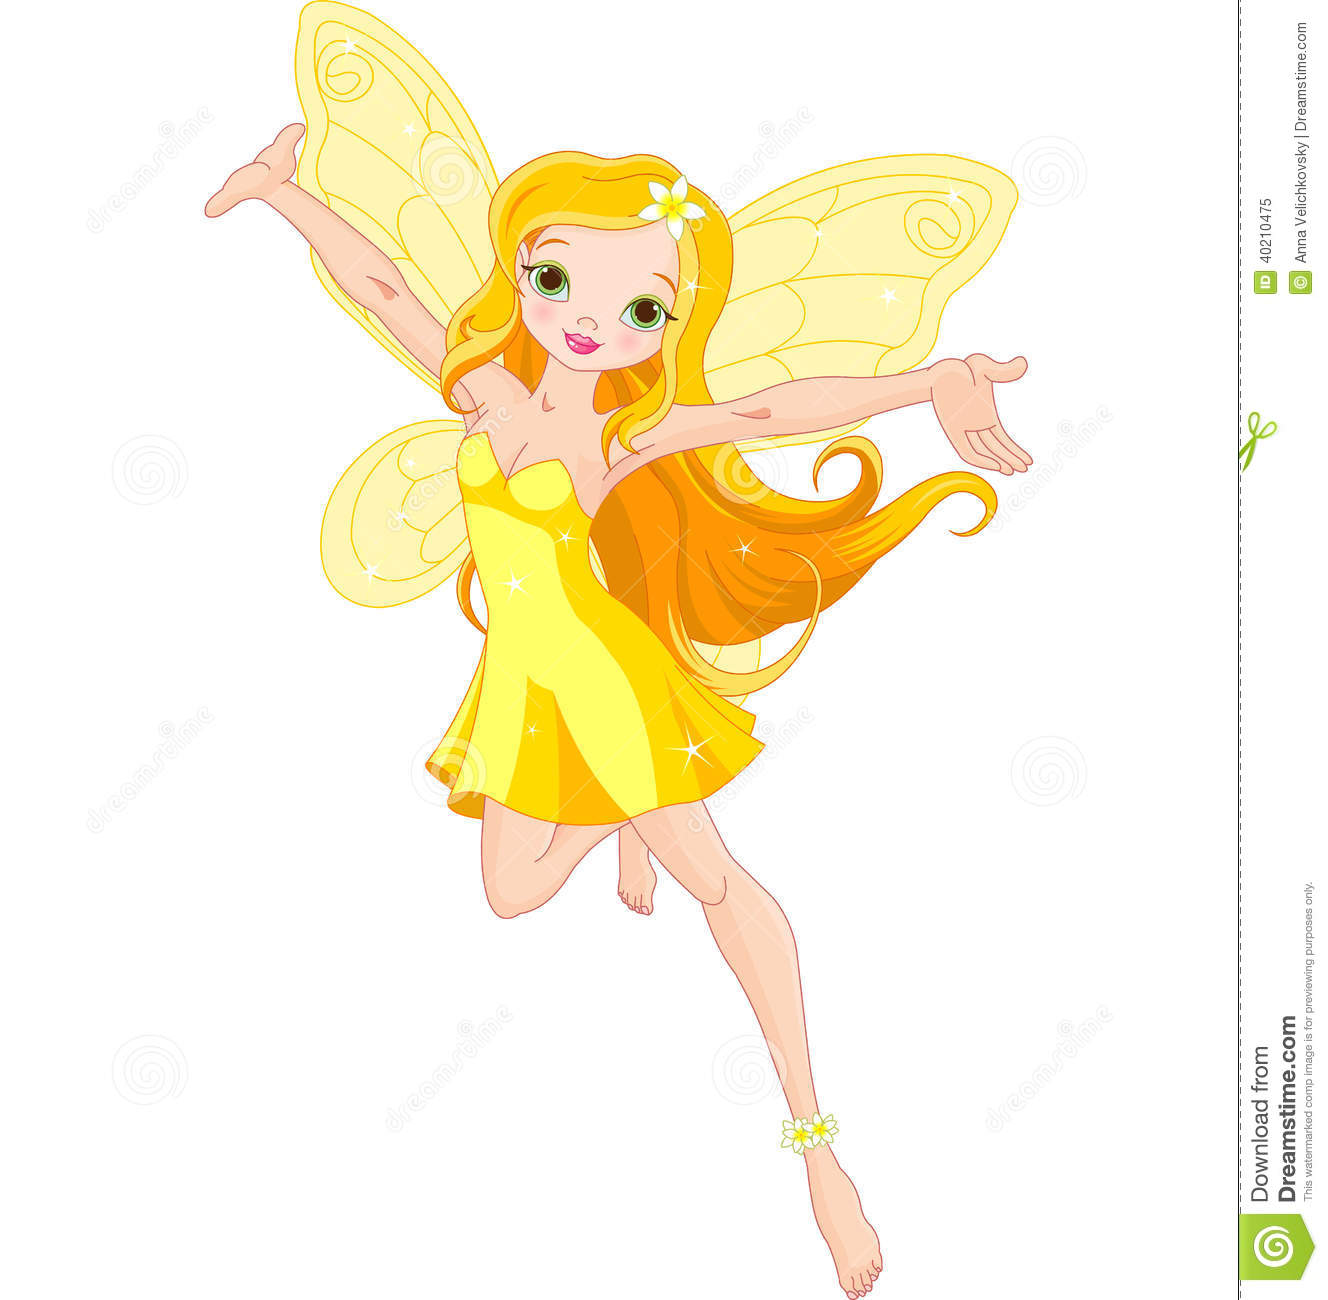 Illustration of a cute yellow fairy in flight.